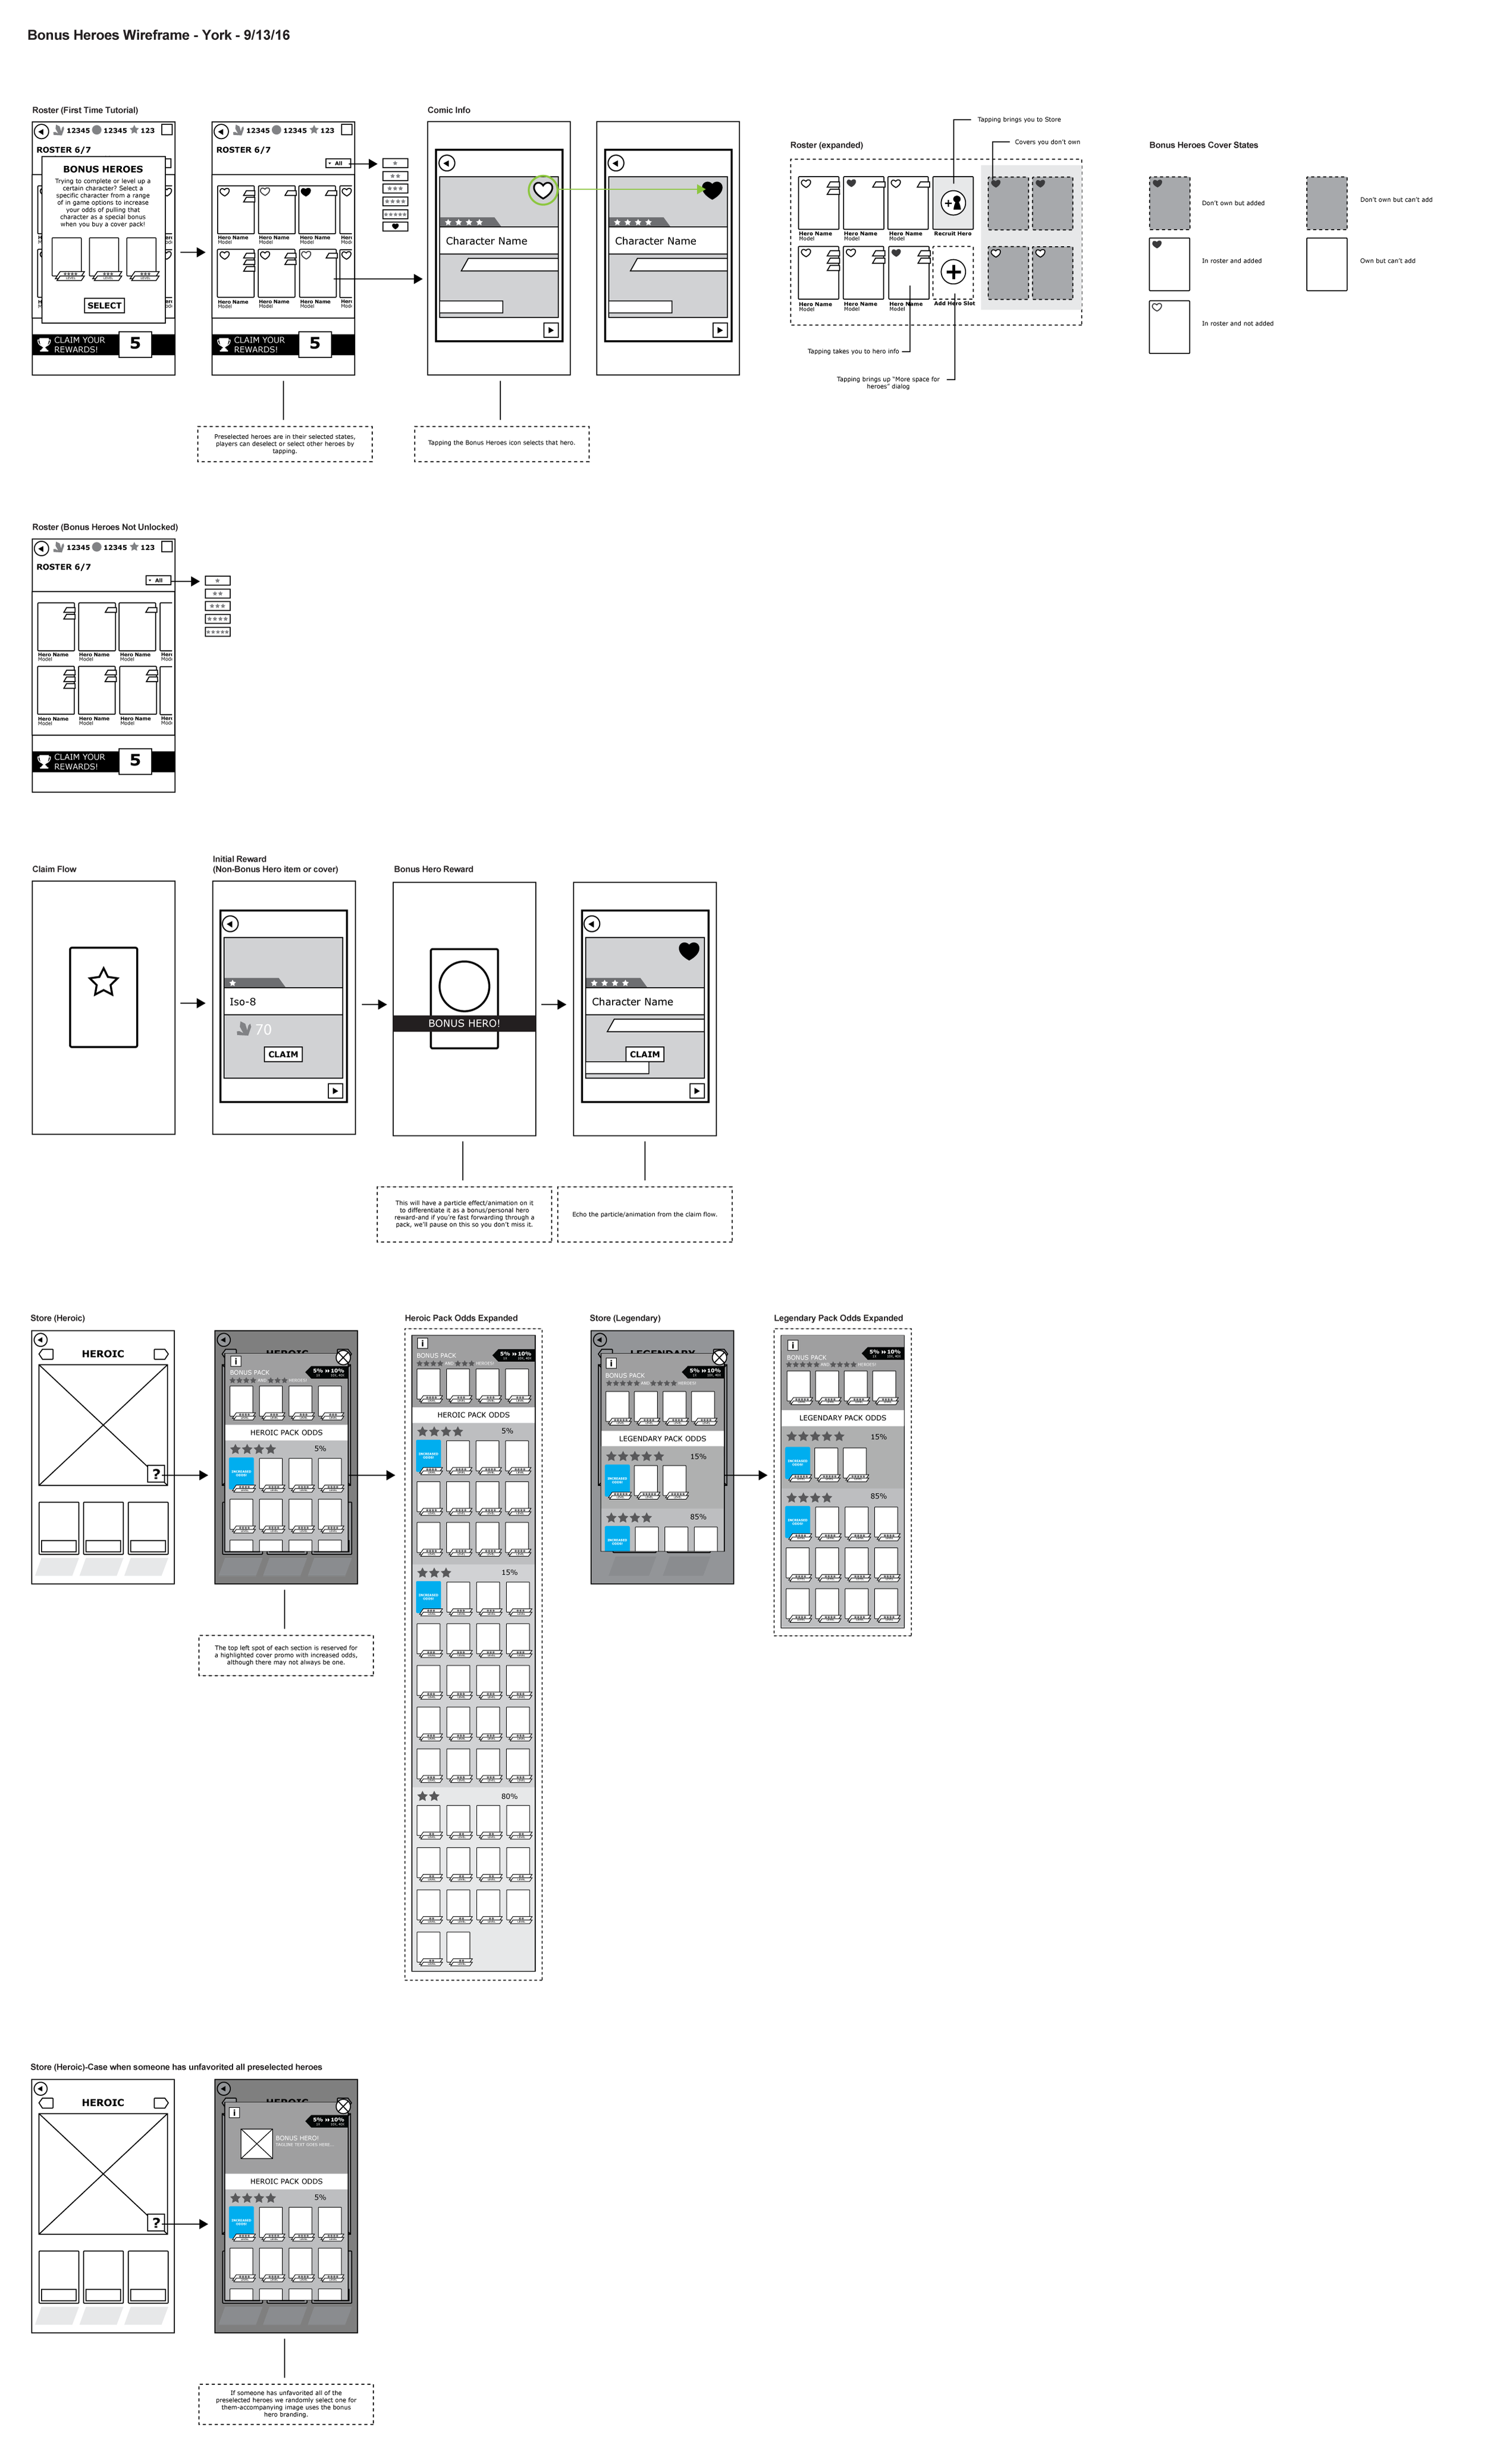 york_personal_heroes_wireframe_13.png